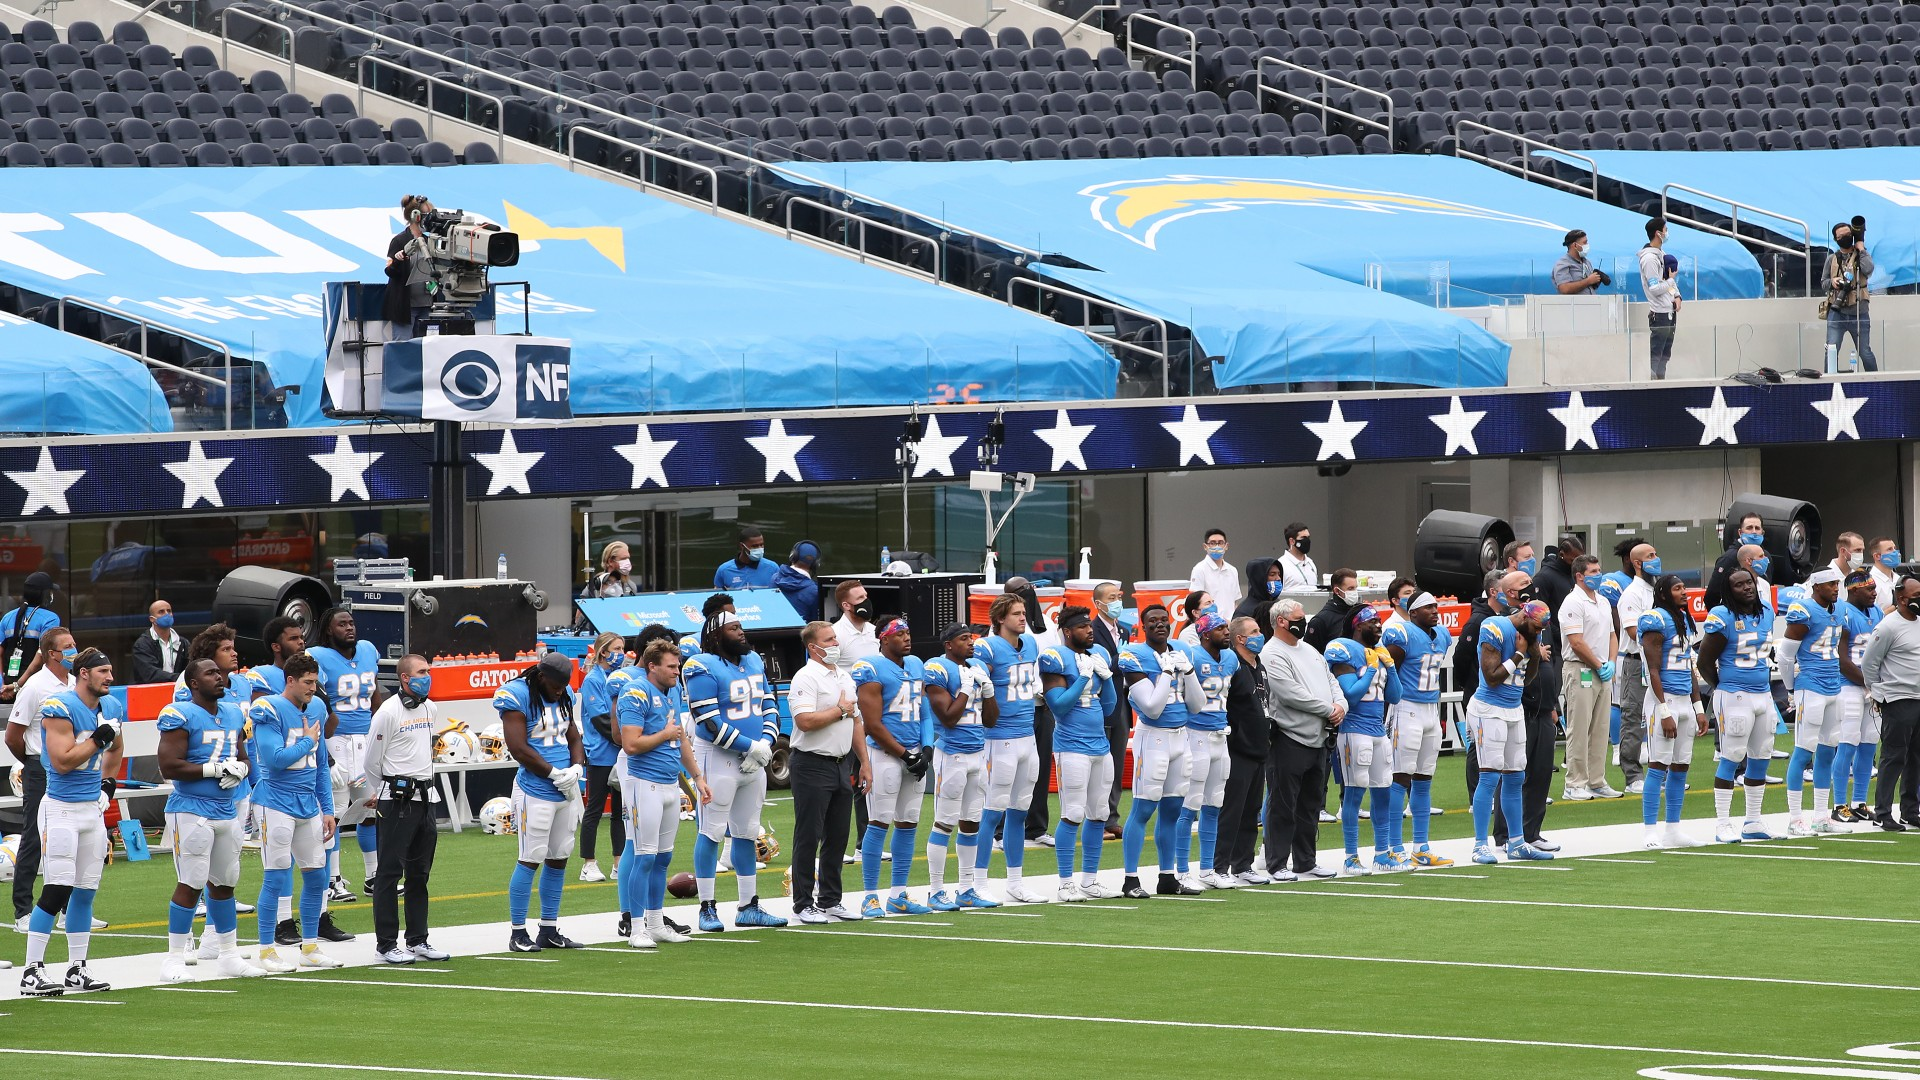 A general view of the Los Angeles Chargers are seen as the national anthem is played before taking on the Jacksonville Jaguars at SoFi Stadium on October 25, 2020 in Inglewood, (Katelyn Mulcahy/Getty Images)